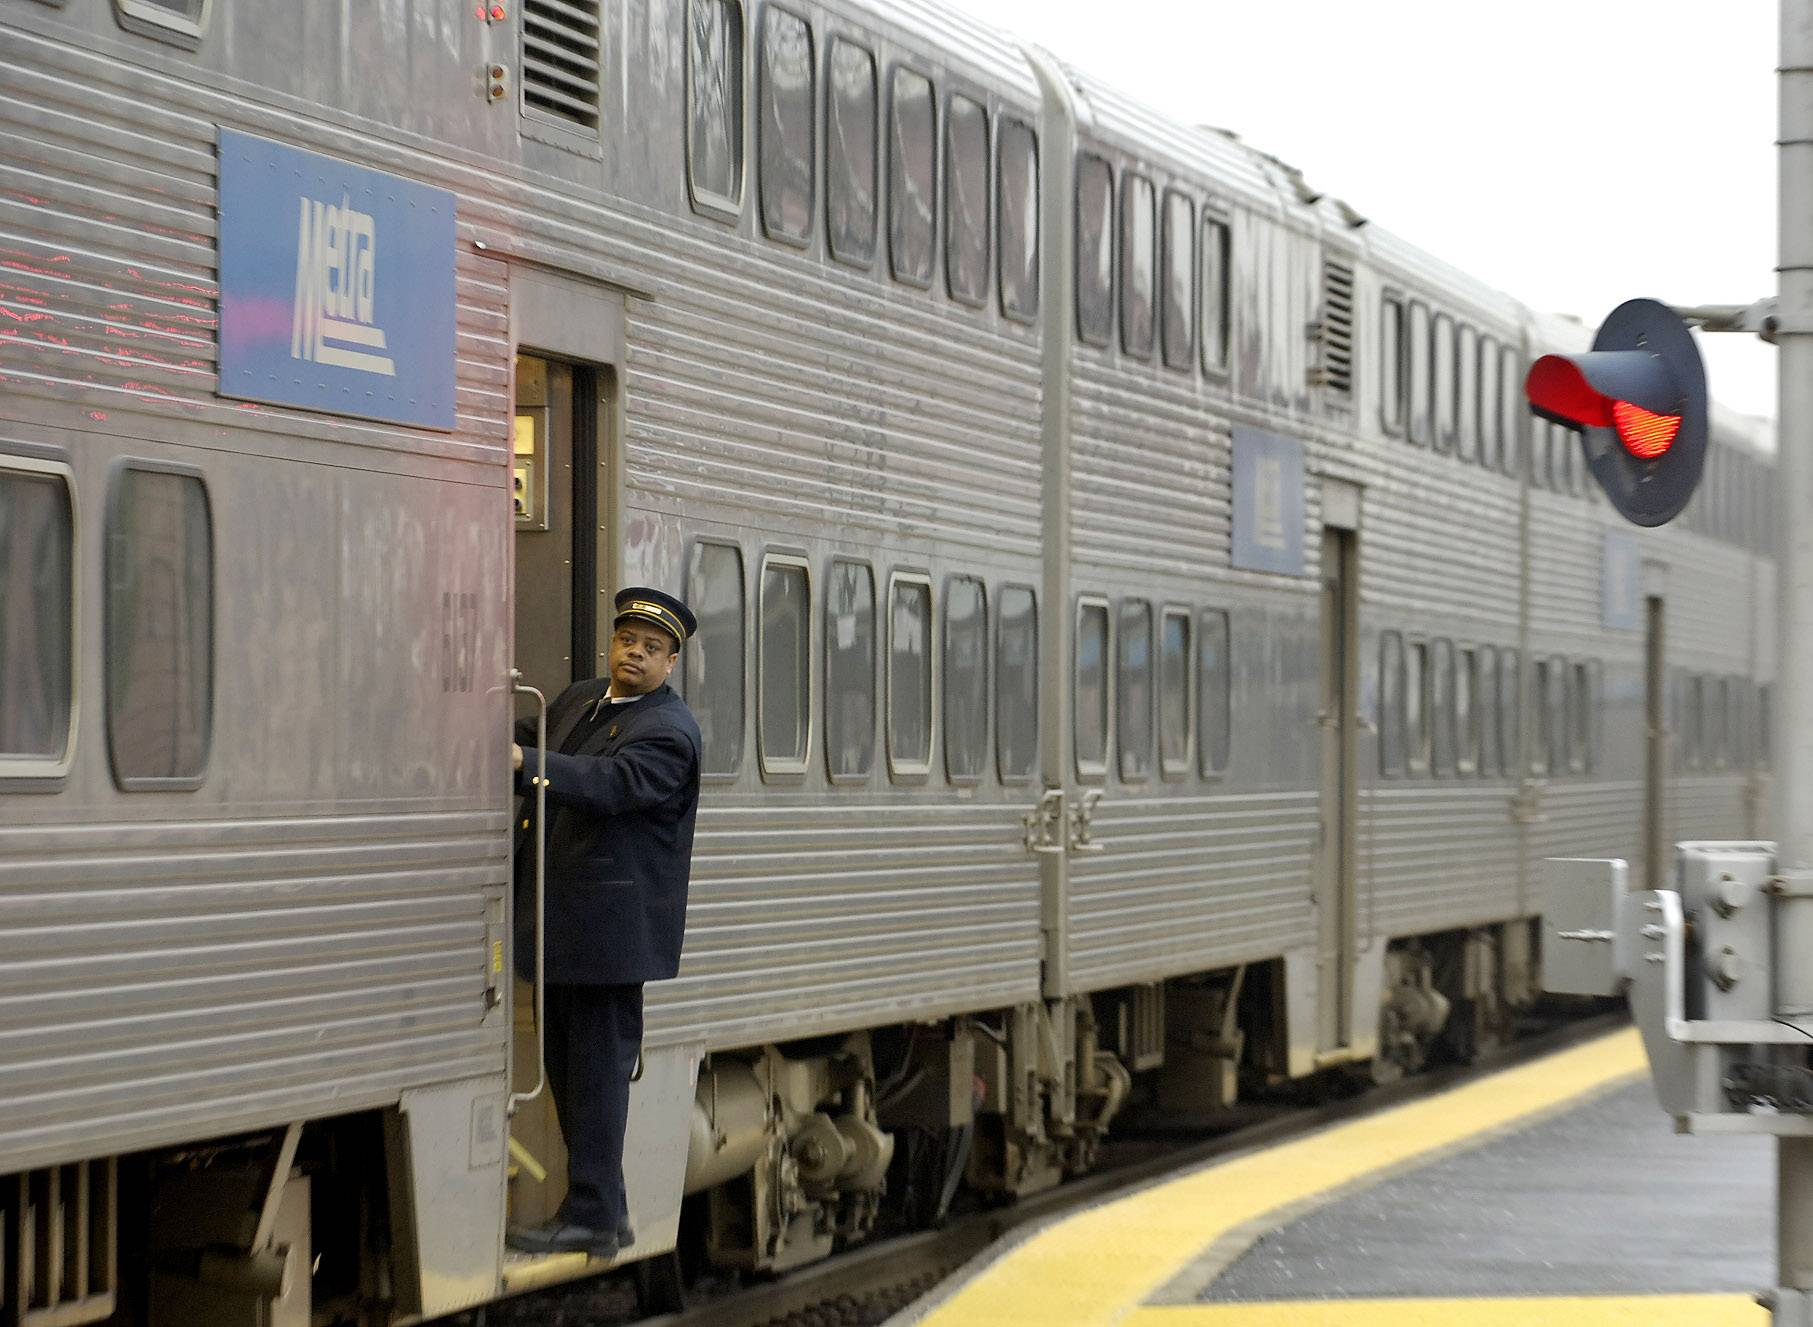 UP defends bypassing Metra's costly wind detectors in delaying trains